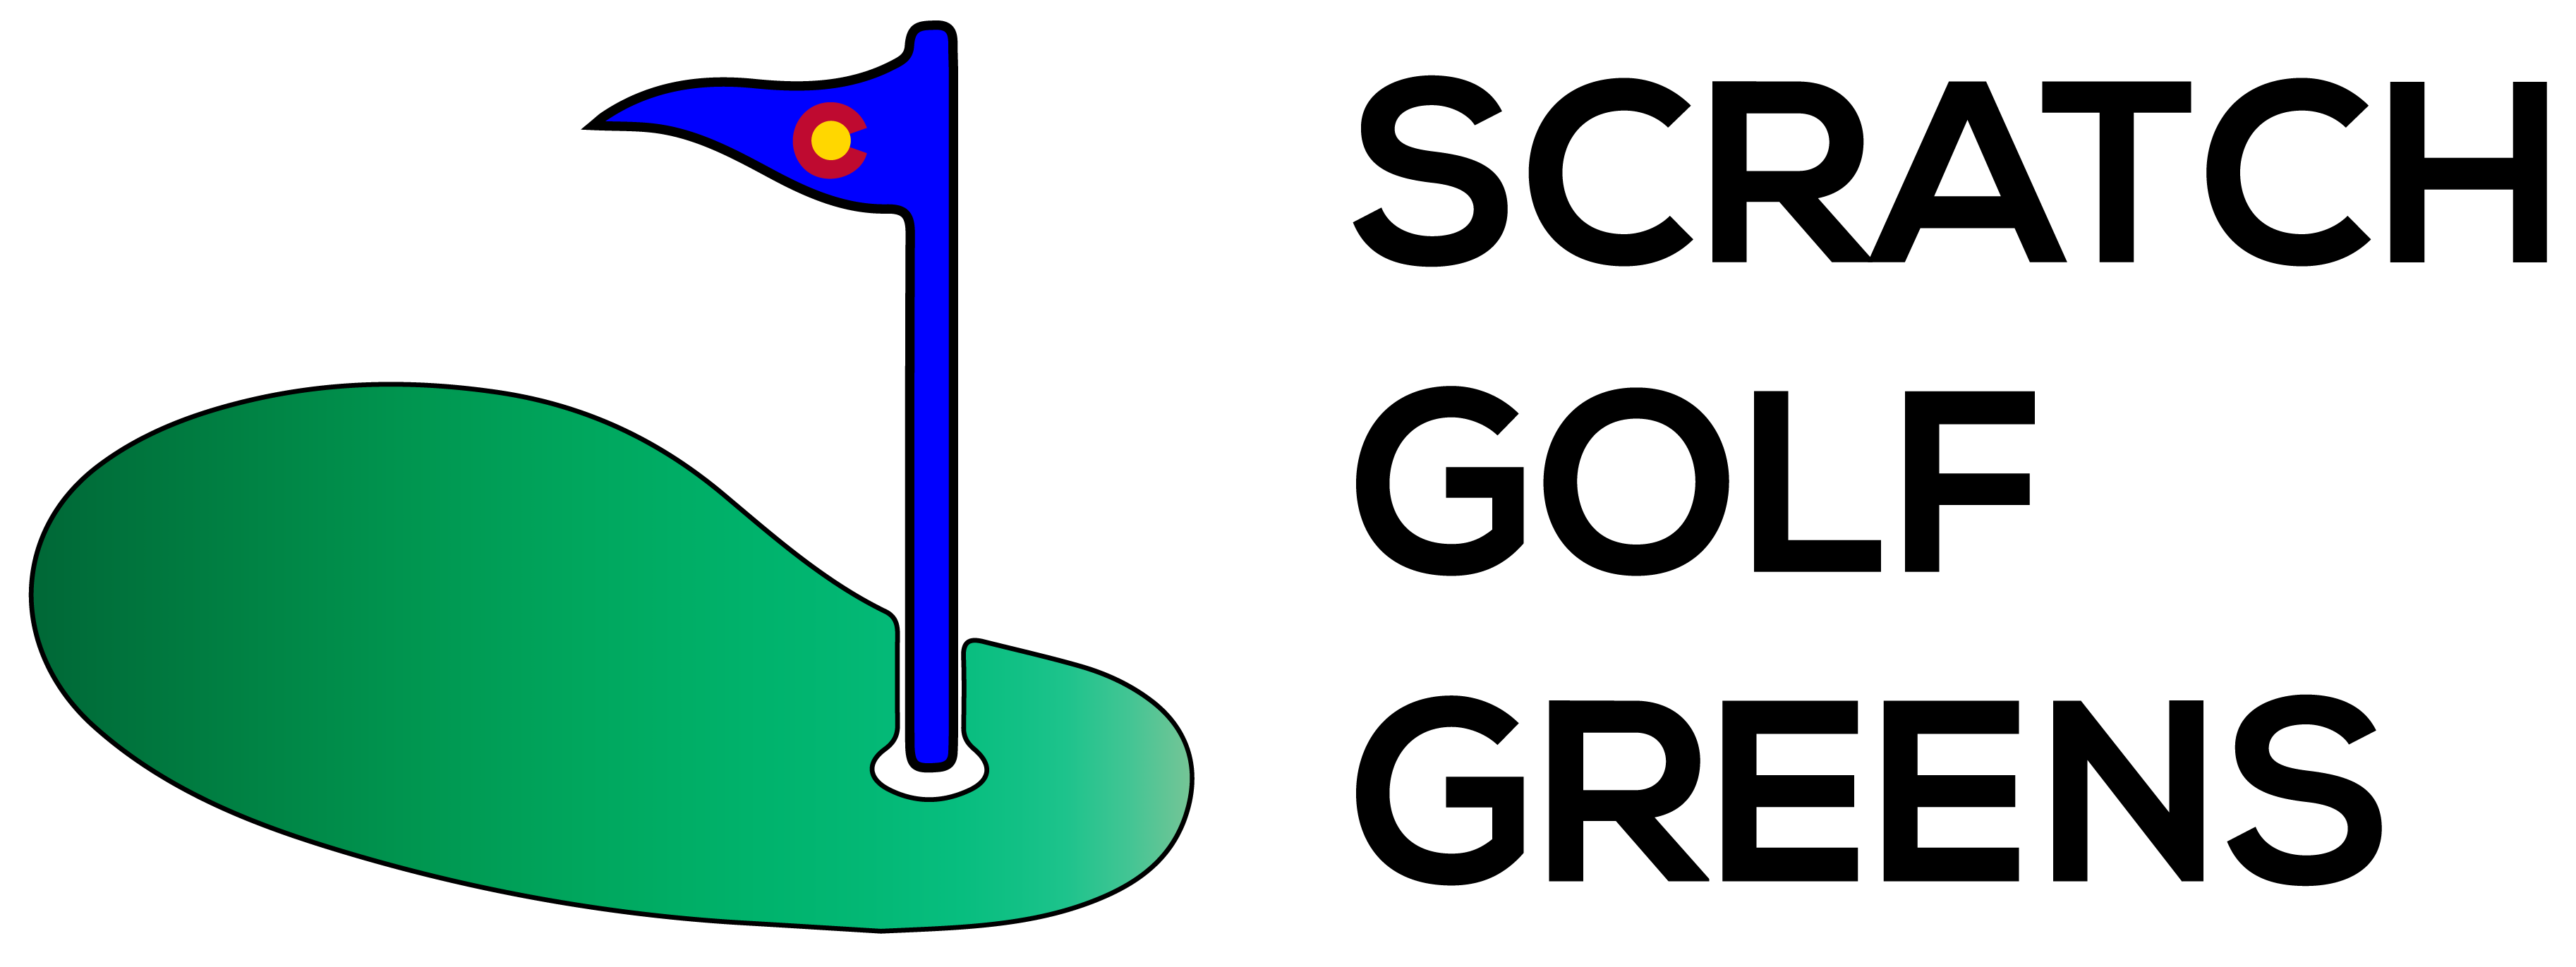 Scratch Golf Greens